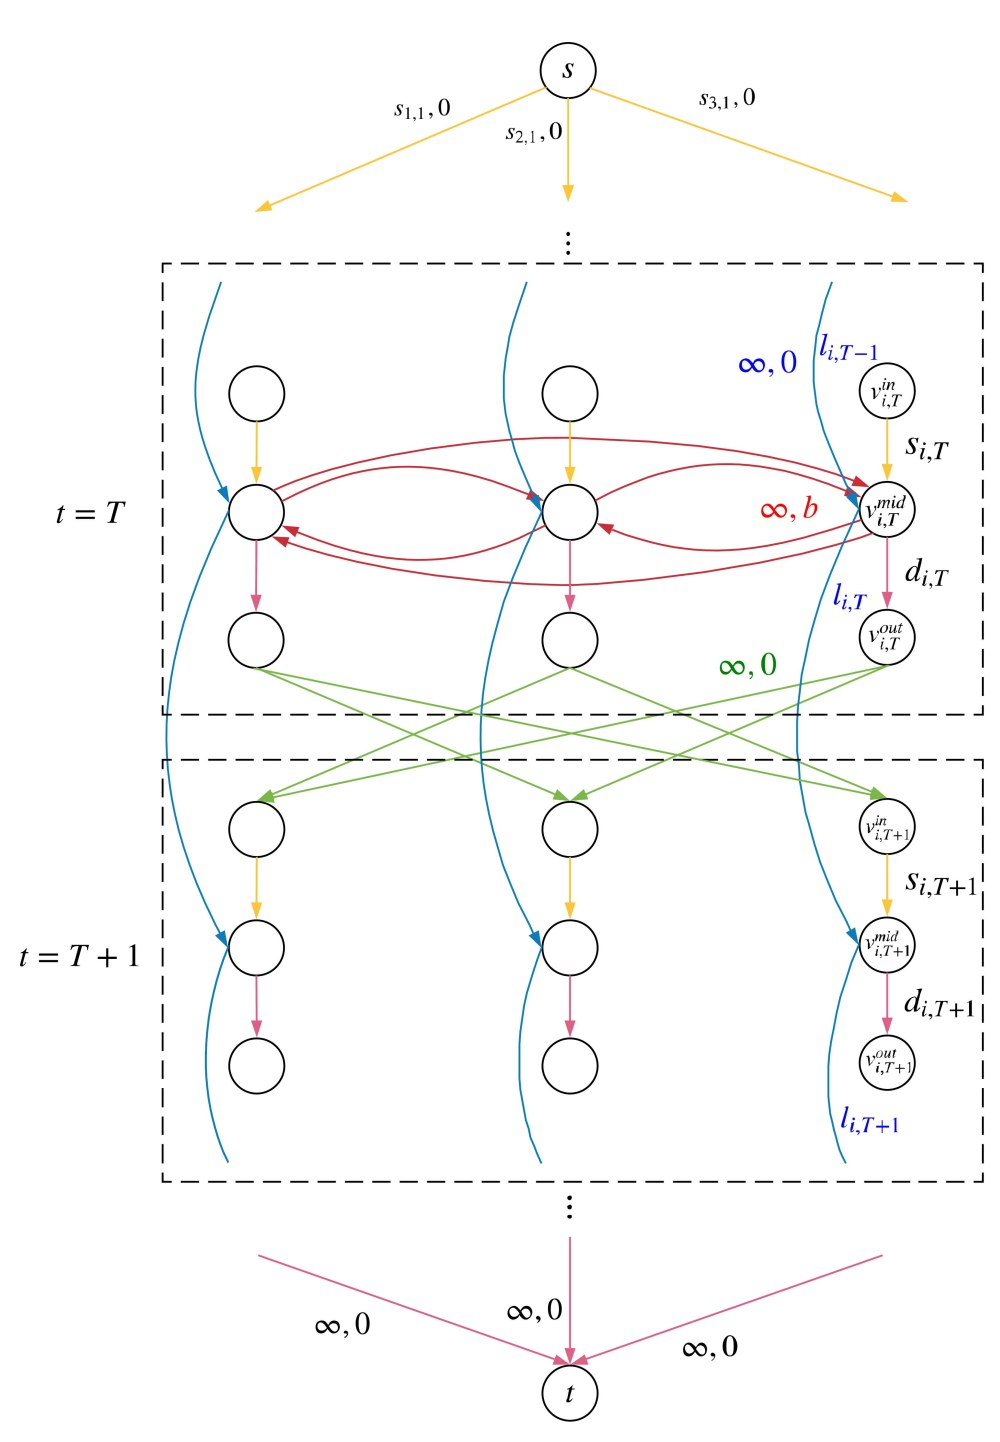 medium resolution of experiment results showed that our algorithm can find the optimal relocation solution of large networks in a reasonable time and with small trade off of